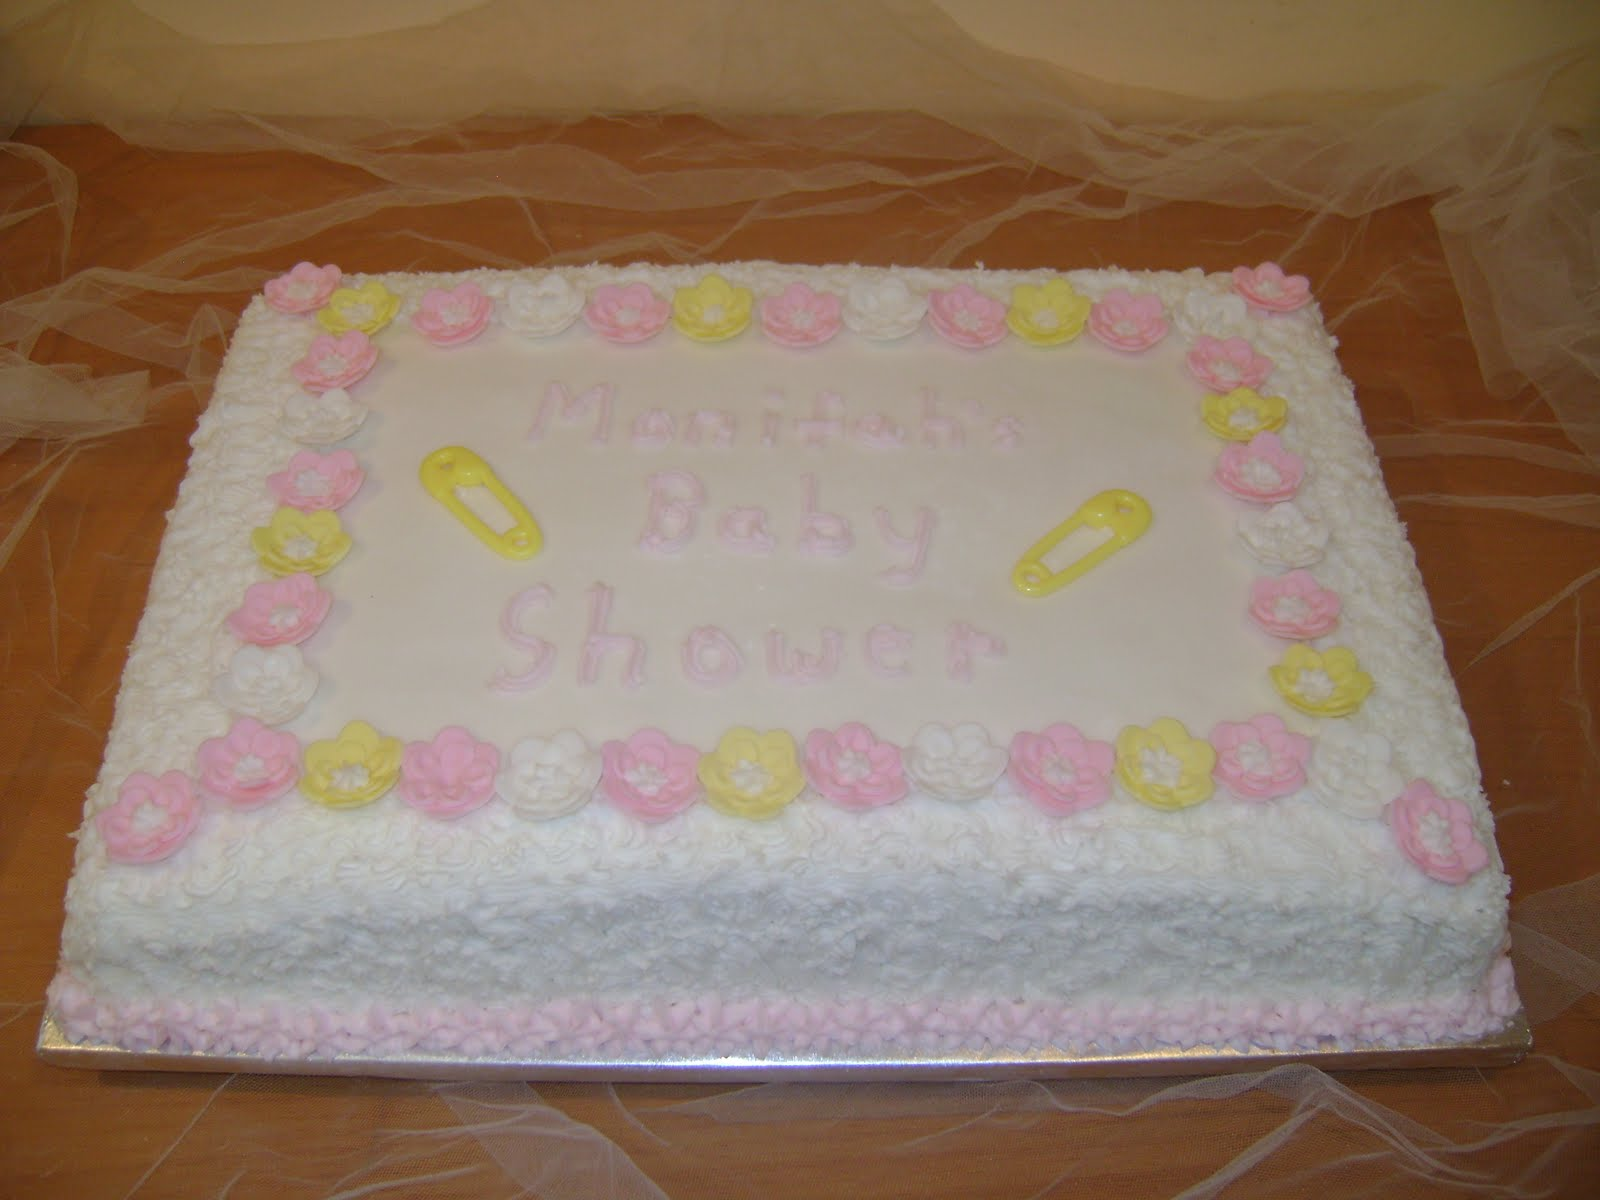 Marilyns Caribbean Cakes Pink Yellow White Baby Shower Cake